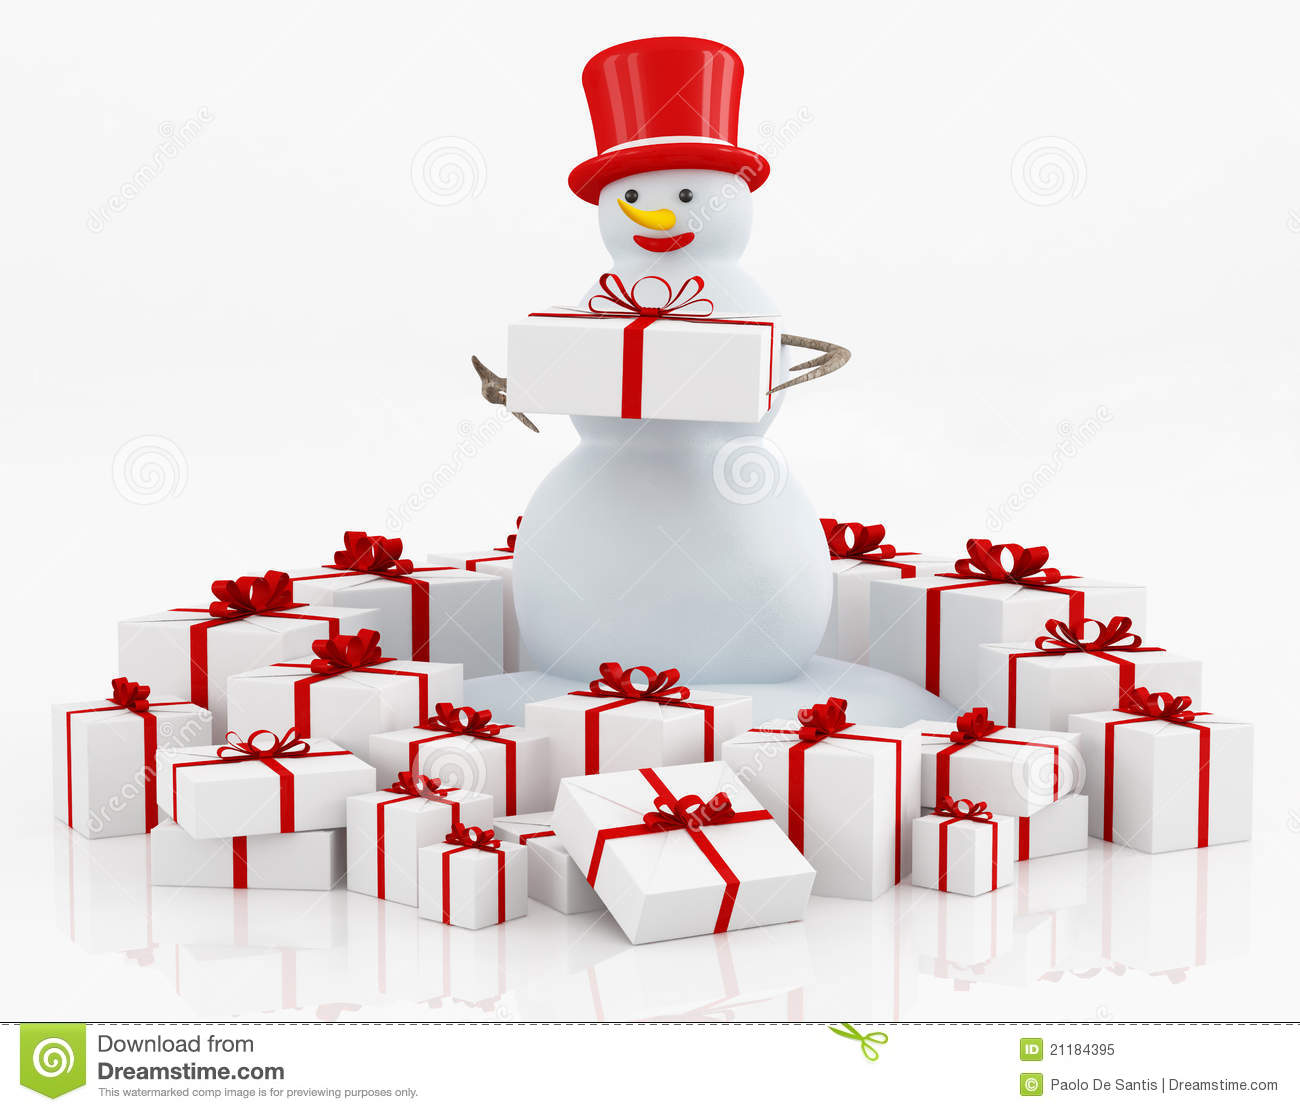 Boxes and snowman